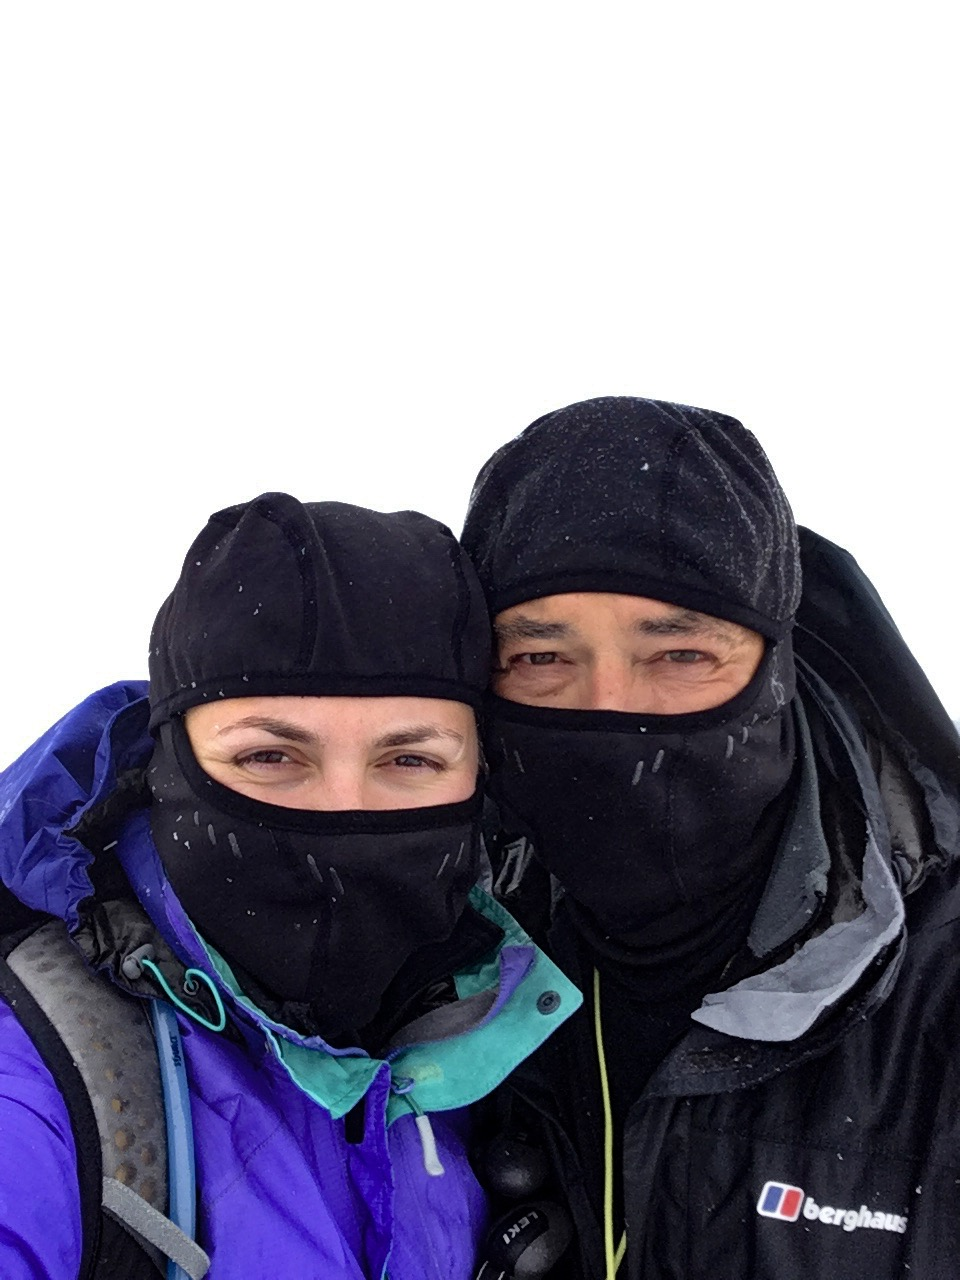 Father and daughter looking very cold at the top of Ben Nevis after walking the West Highland. They are looking directly into the camera but wearing balaclavas and snow is falling on them.